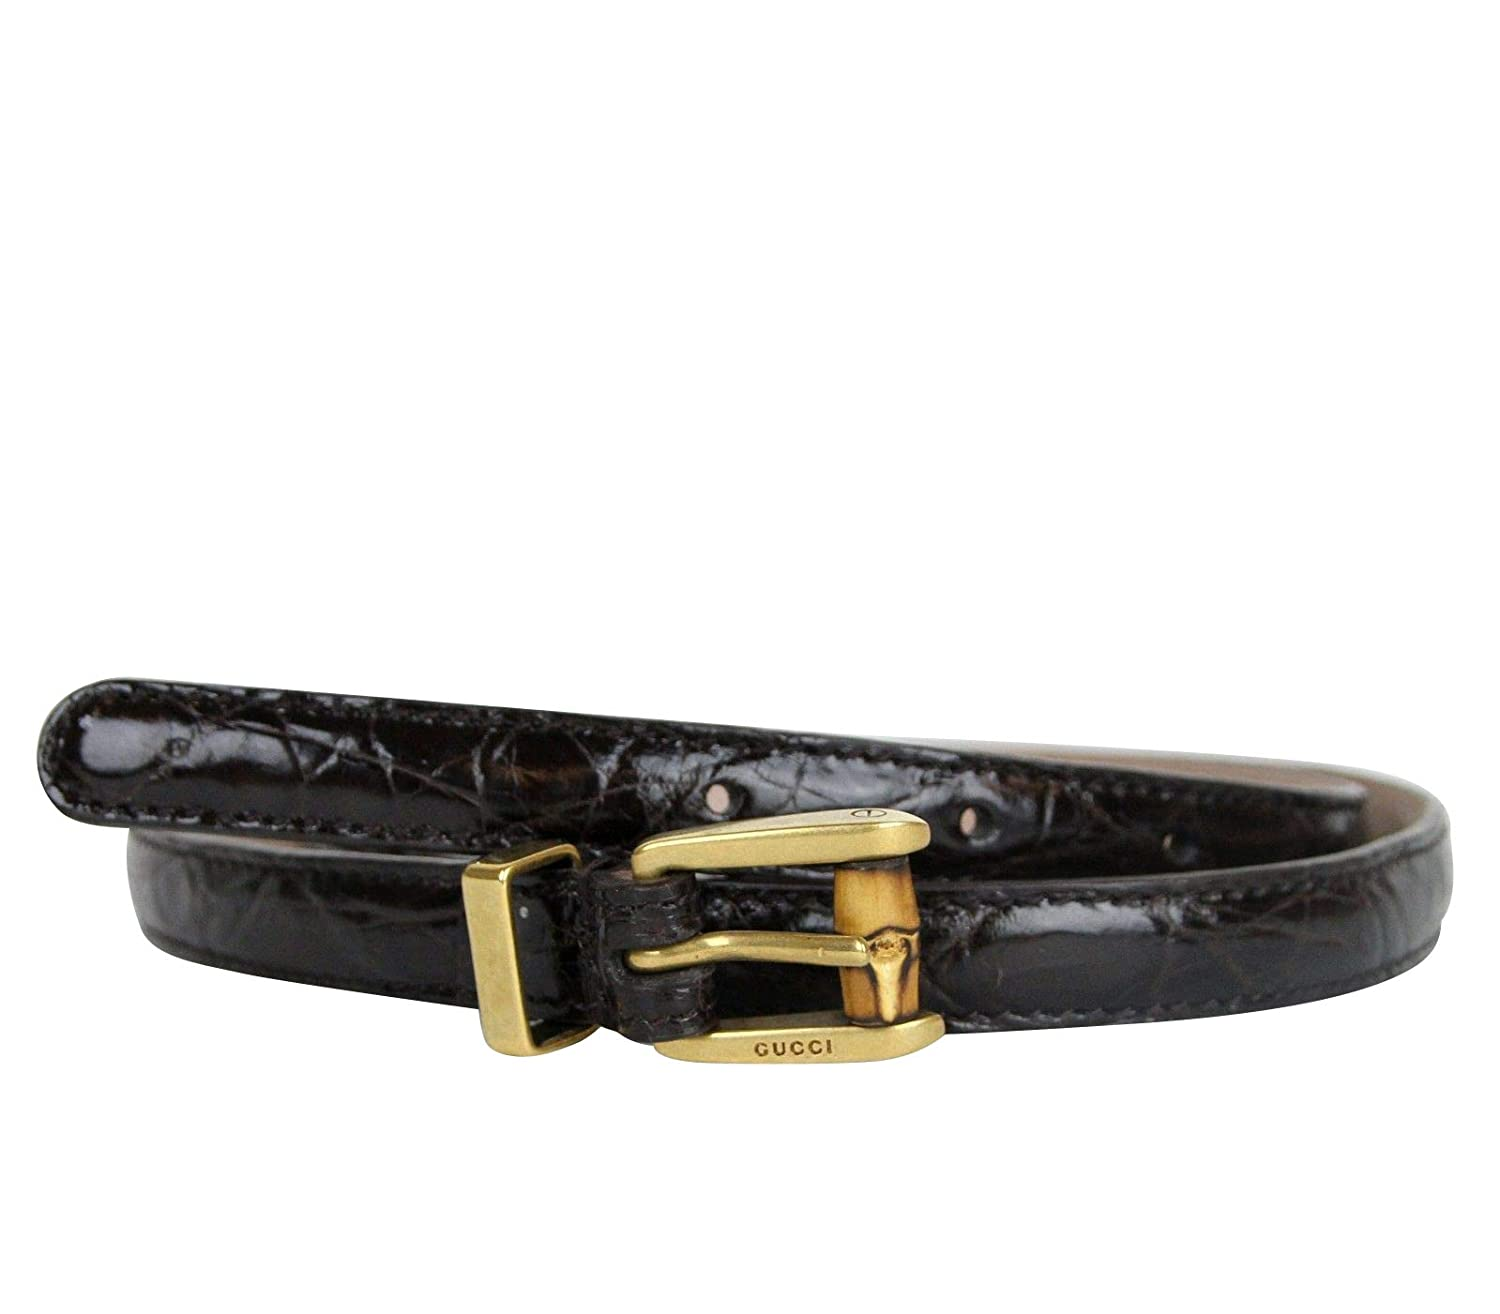 e4e2d867c51 Amazon.com  Gucci Women s Bamboo Buckle Dark Brown Skinny Crocodile Belt  339065 E7I0T 2140  Clothing